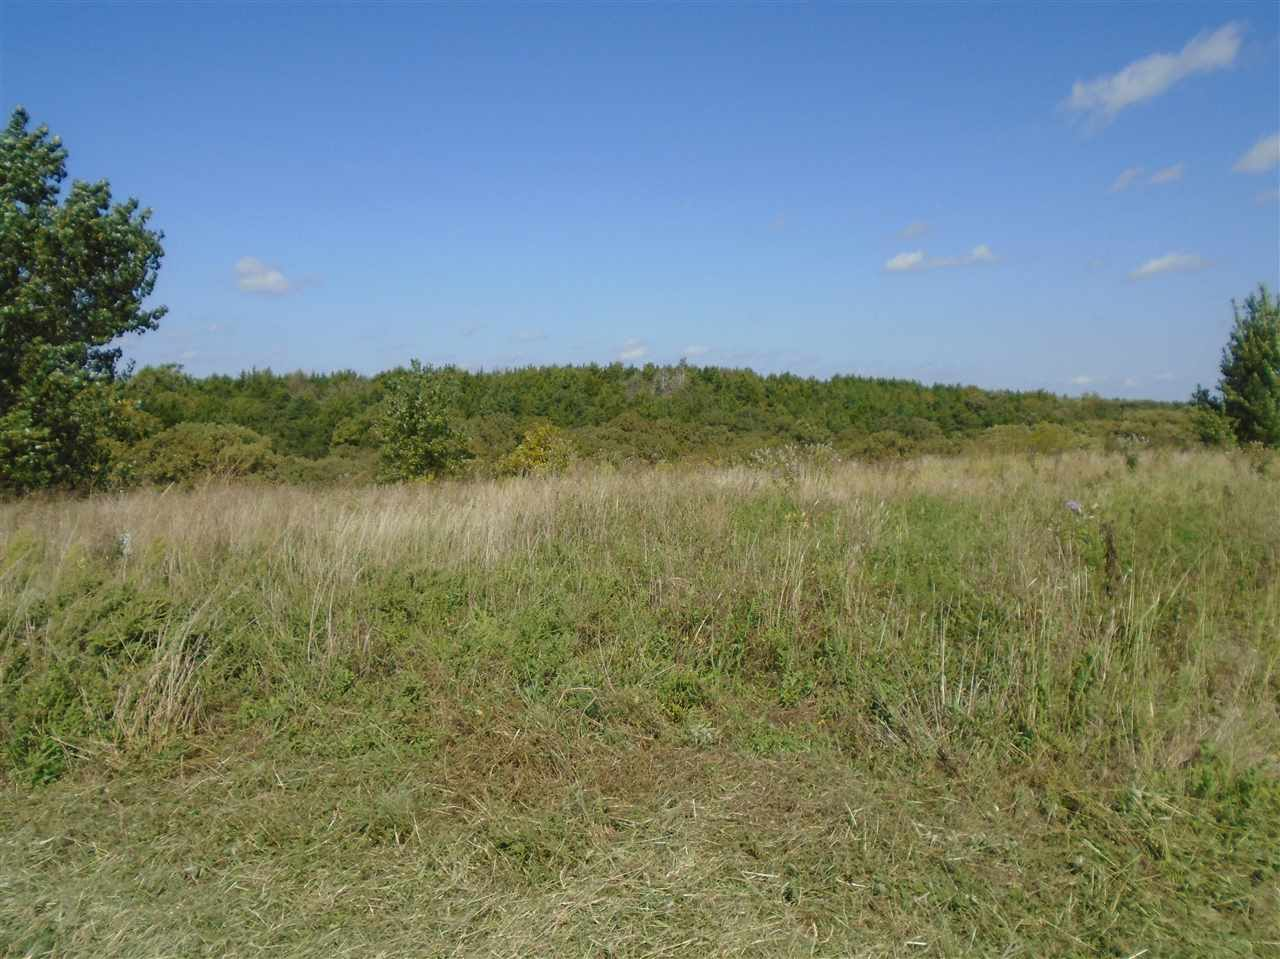 Extremely well located land consisting of 113 acres +/-.  Current zoning is Agricultural.  Very good visibility from US HWY 77. Call Jeff at Mathis Lueker Real Estate 785-223-7909 for additional information.